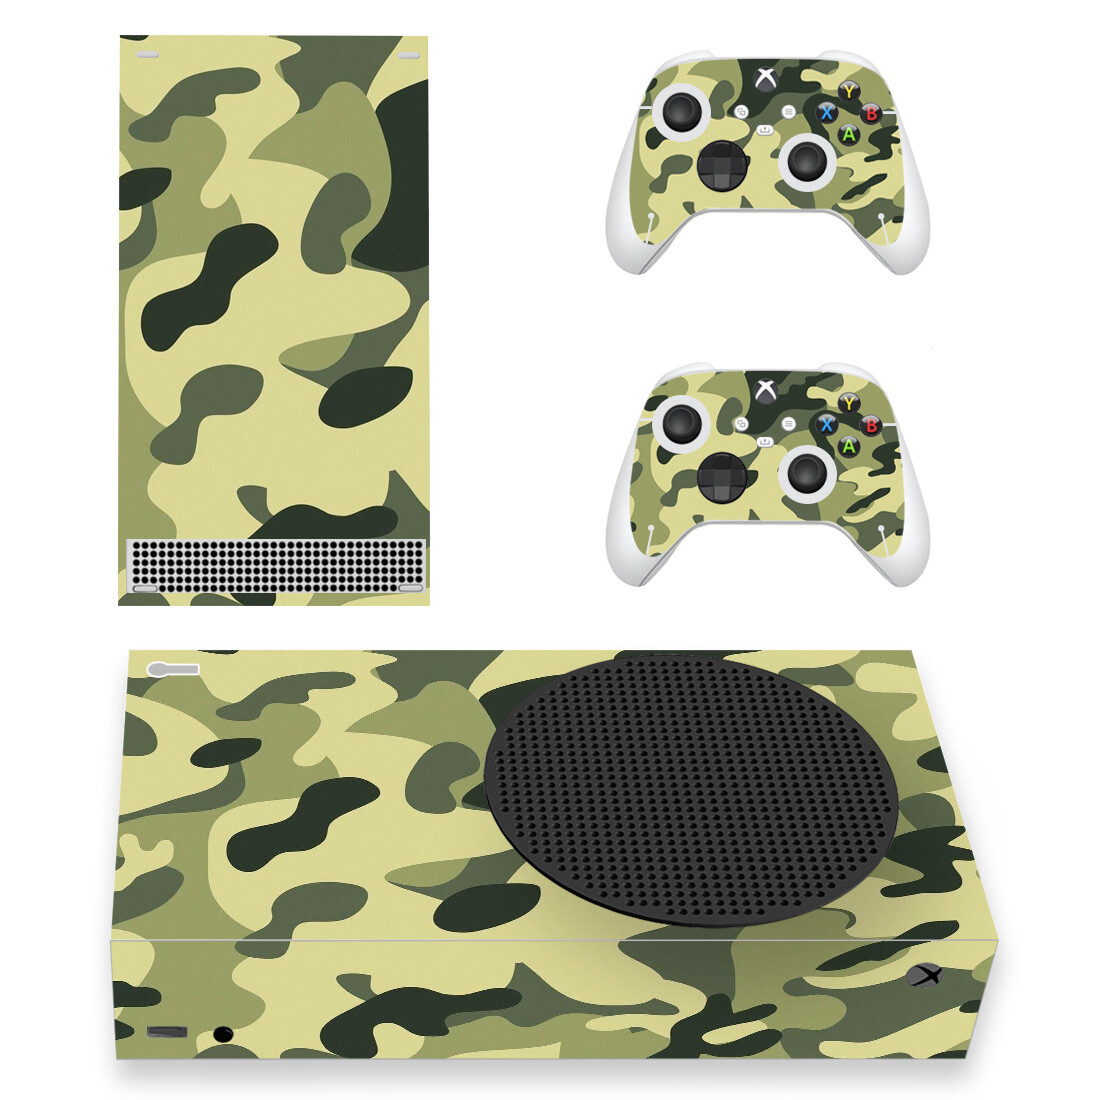 Olive Green Military Camouflage Skin Sticker For Xbox Series S And Controllers